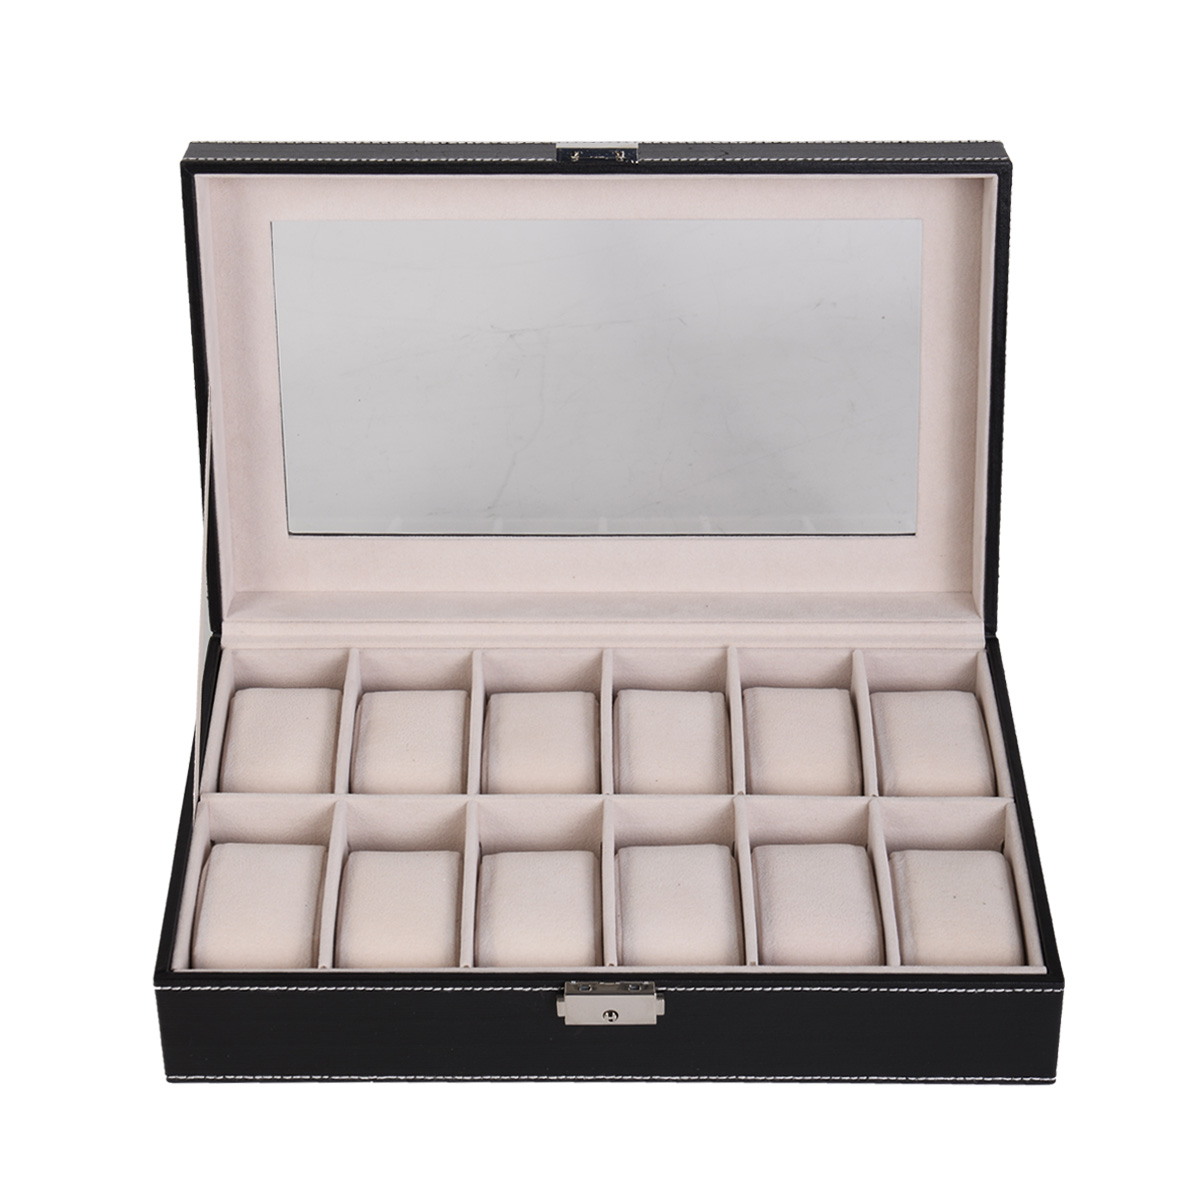 12 Slots PU Leather Watch Box Display Jewelry Case Organizer Watch